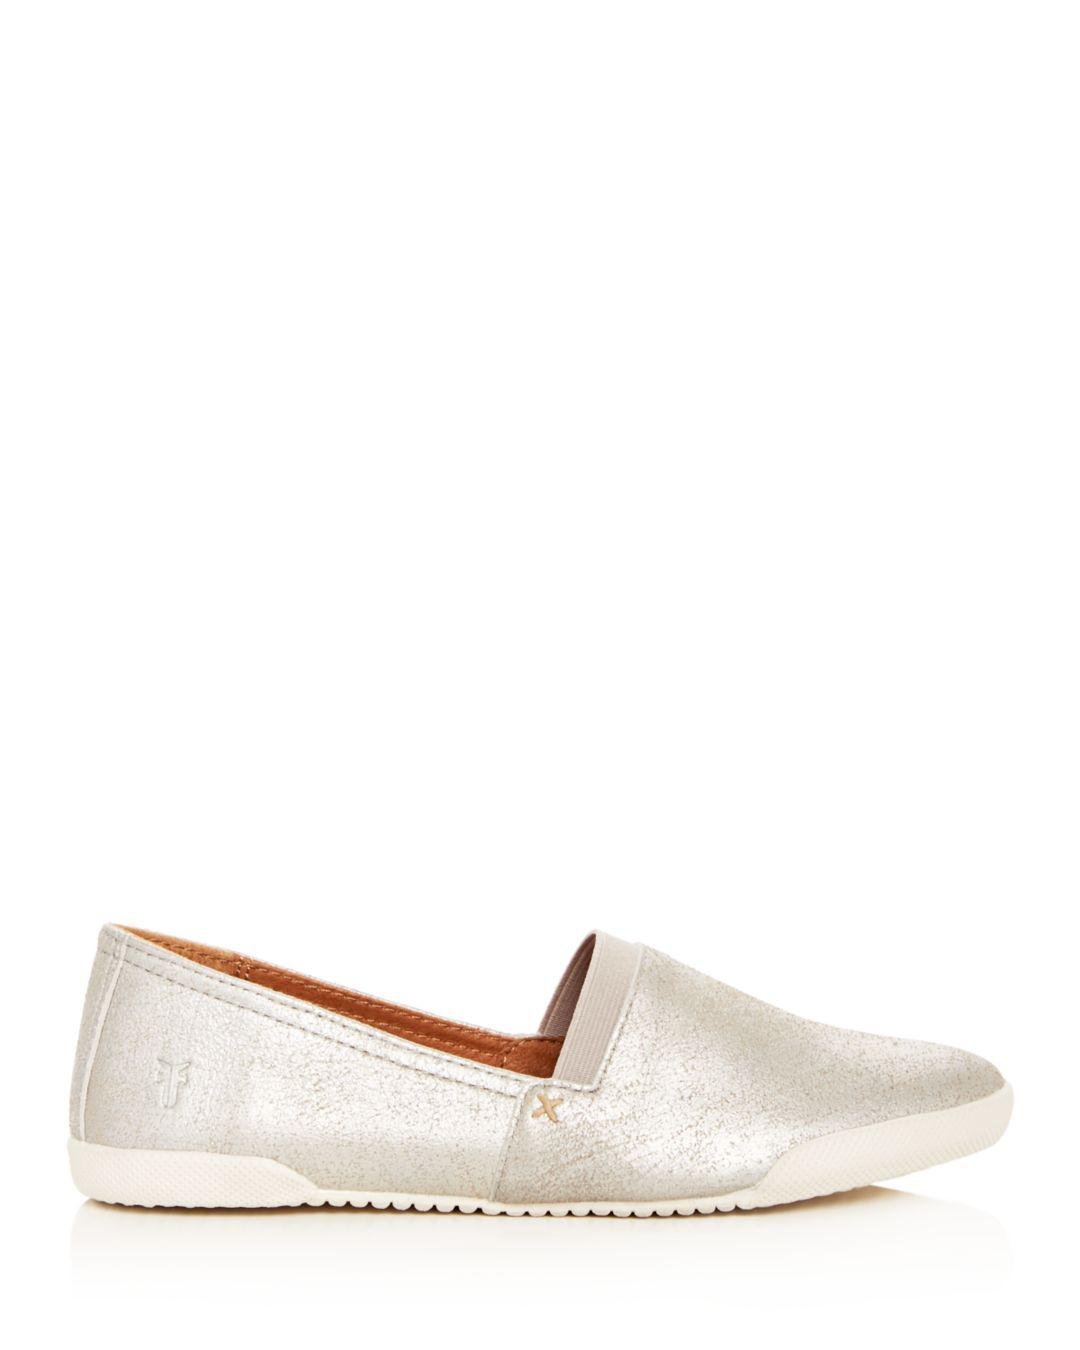 ef0a1e4ccb Lyst - Frye Women s Melanie Metallic Suede Slip-on Sneakers in Metallic